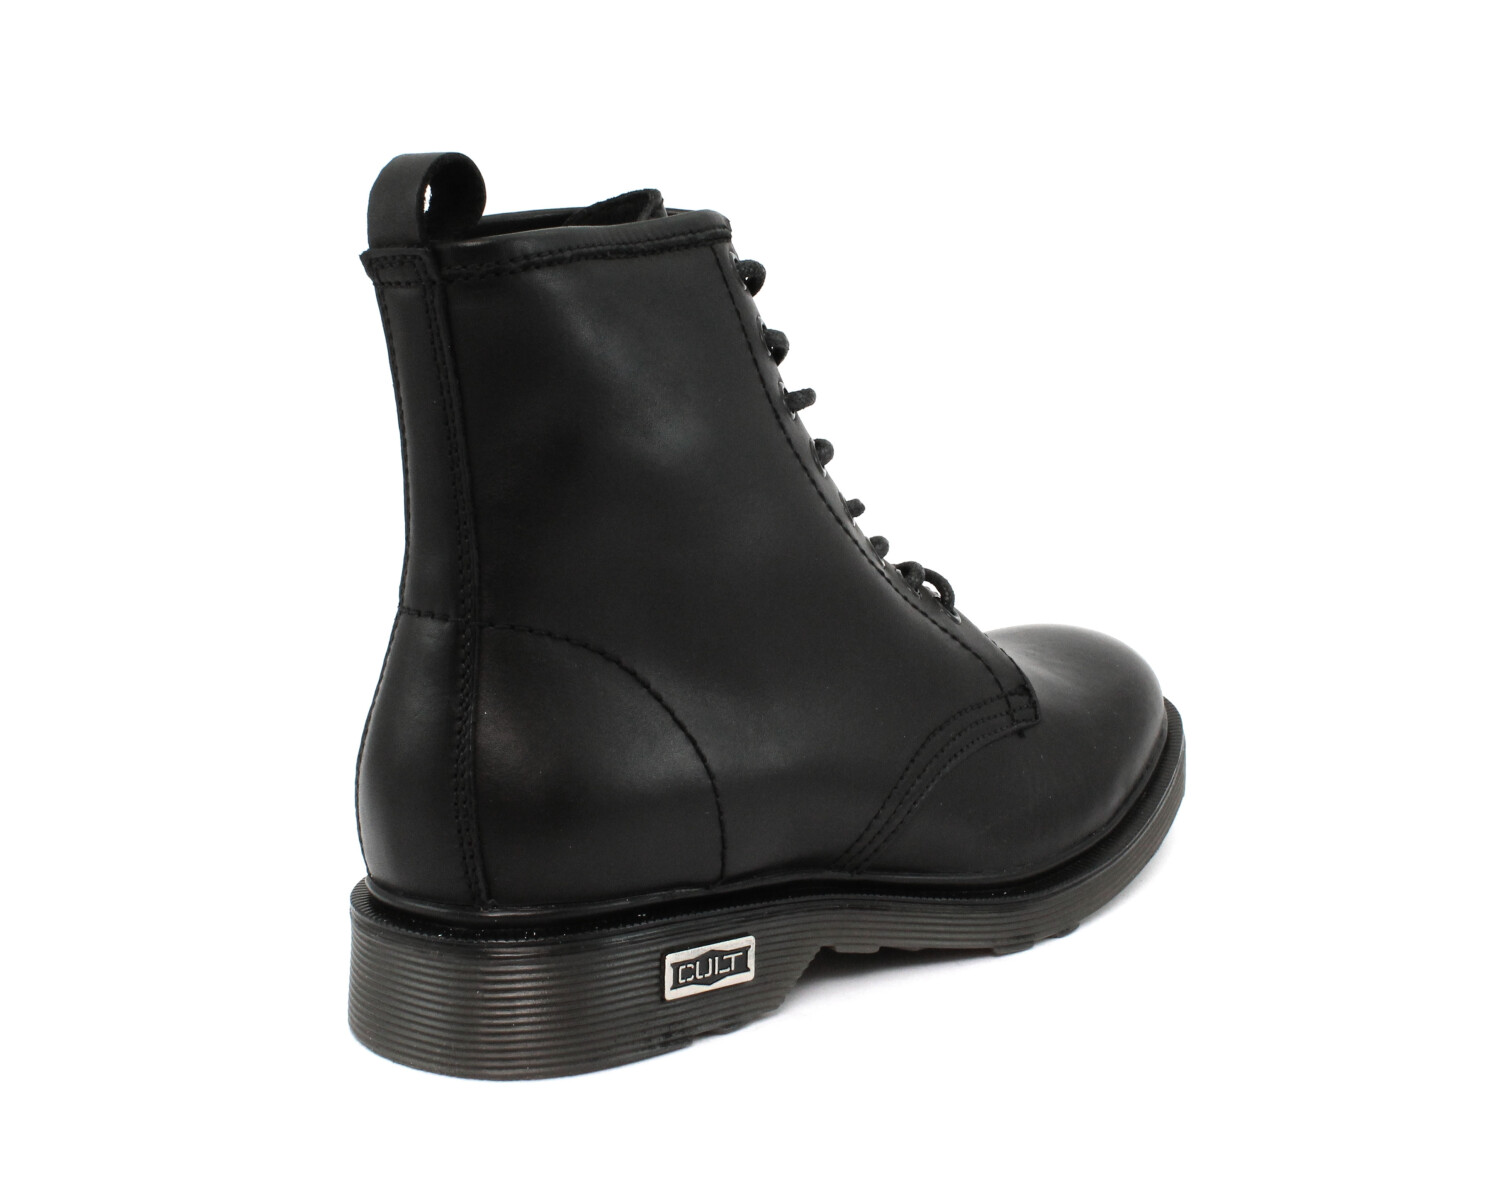 Stivaletto CULT OZZY 416 MID M 101626